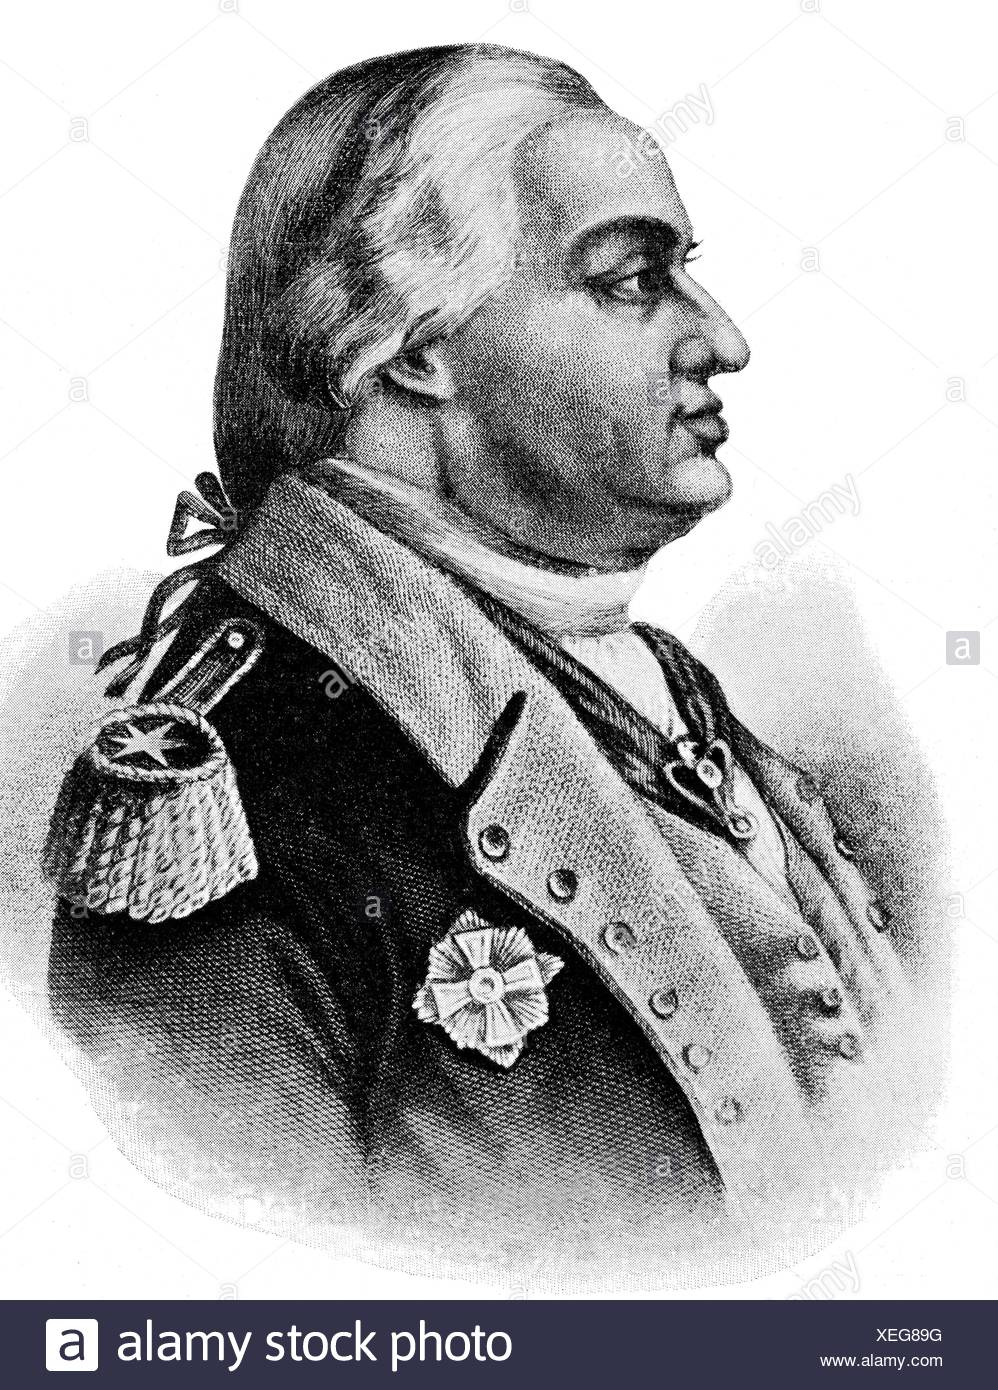 baron von steubens a commander of the continental army achievements in improving military discipline Valley forge in pennsylvania was the site of the military camp of the american continental army over the winter of 17771778 during the american revolutionary war it is approximately 20 miles northwest of philadelphia[1.